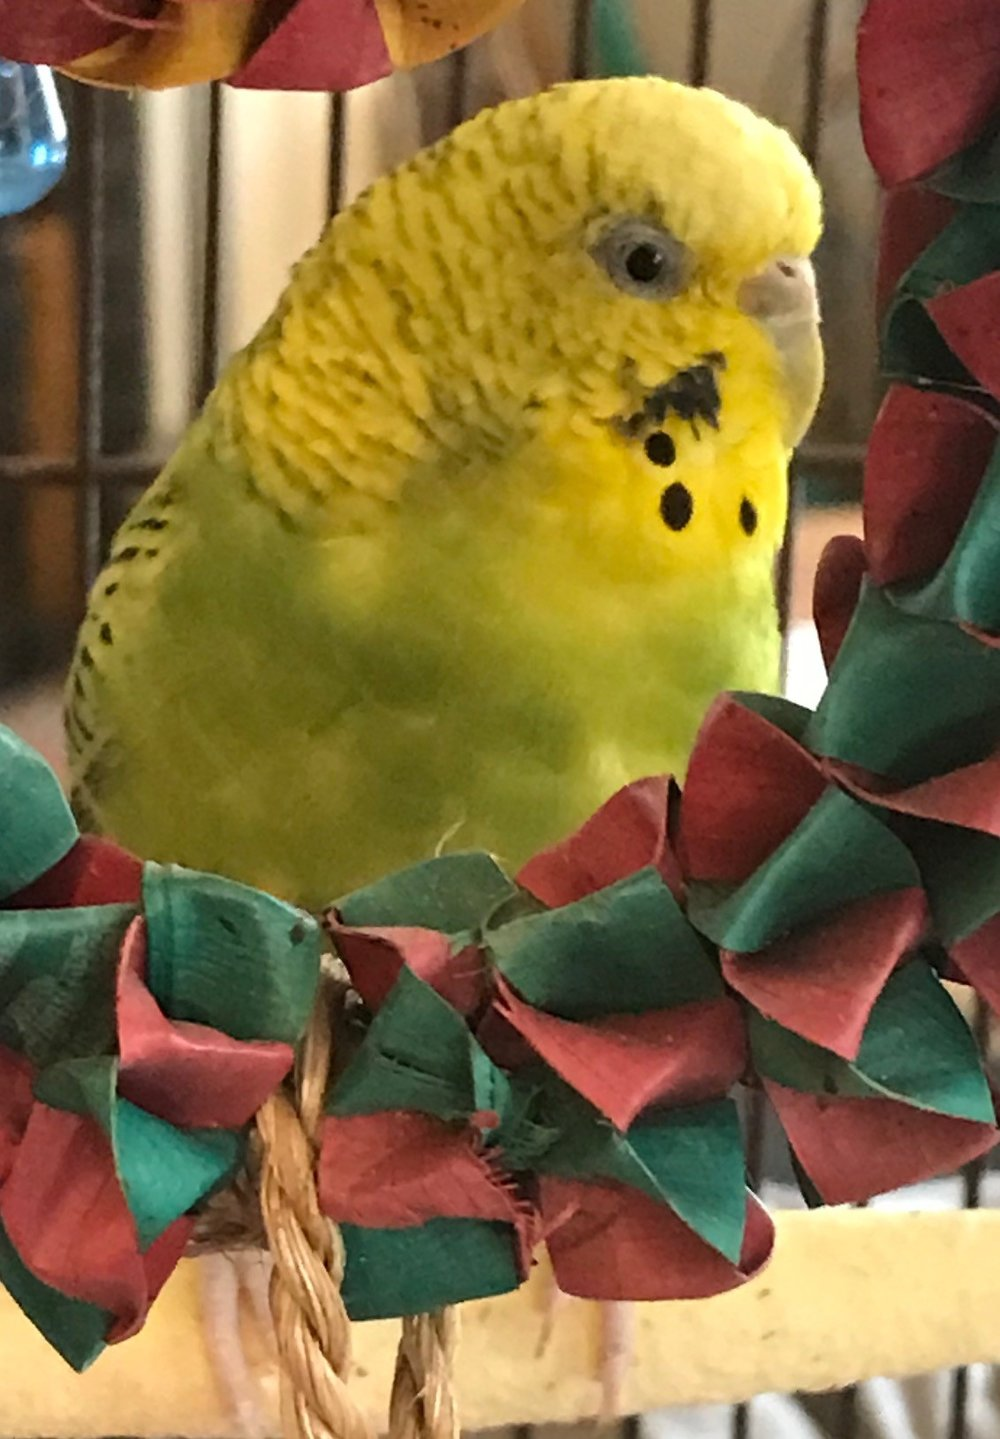 Lily was adopted in July 2018! She is an adult female parakeet who was found outside by one of our former adopters. Parakeets are native to Australia and live for 10+ years.